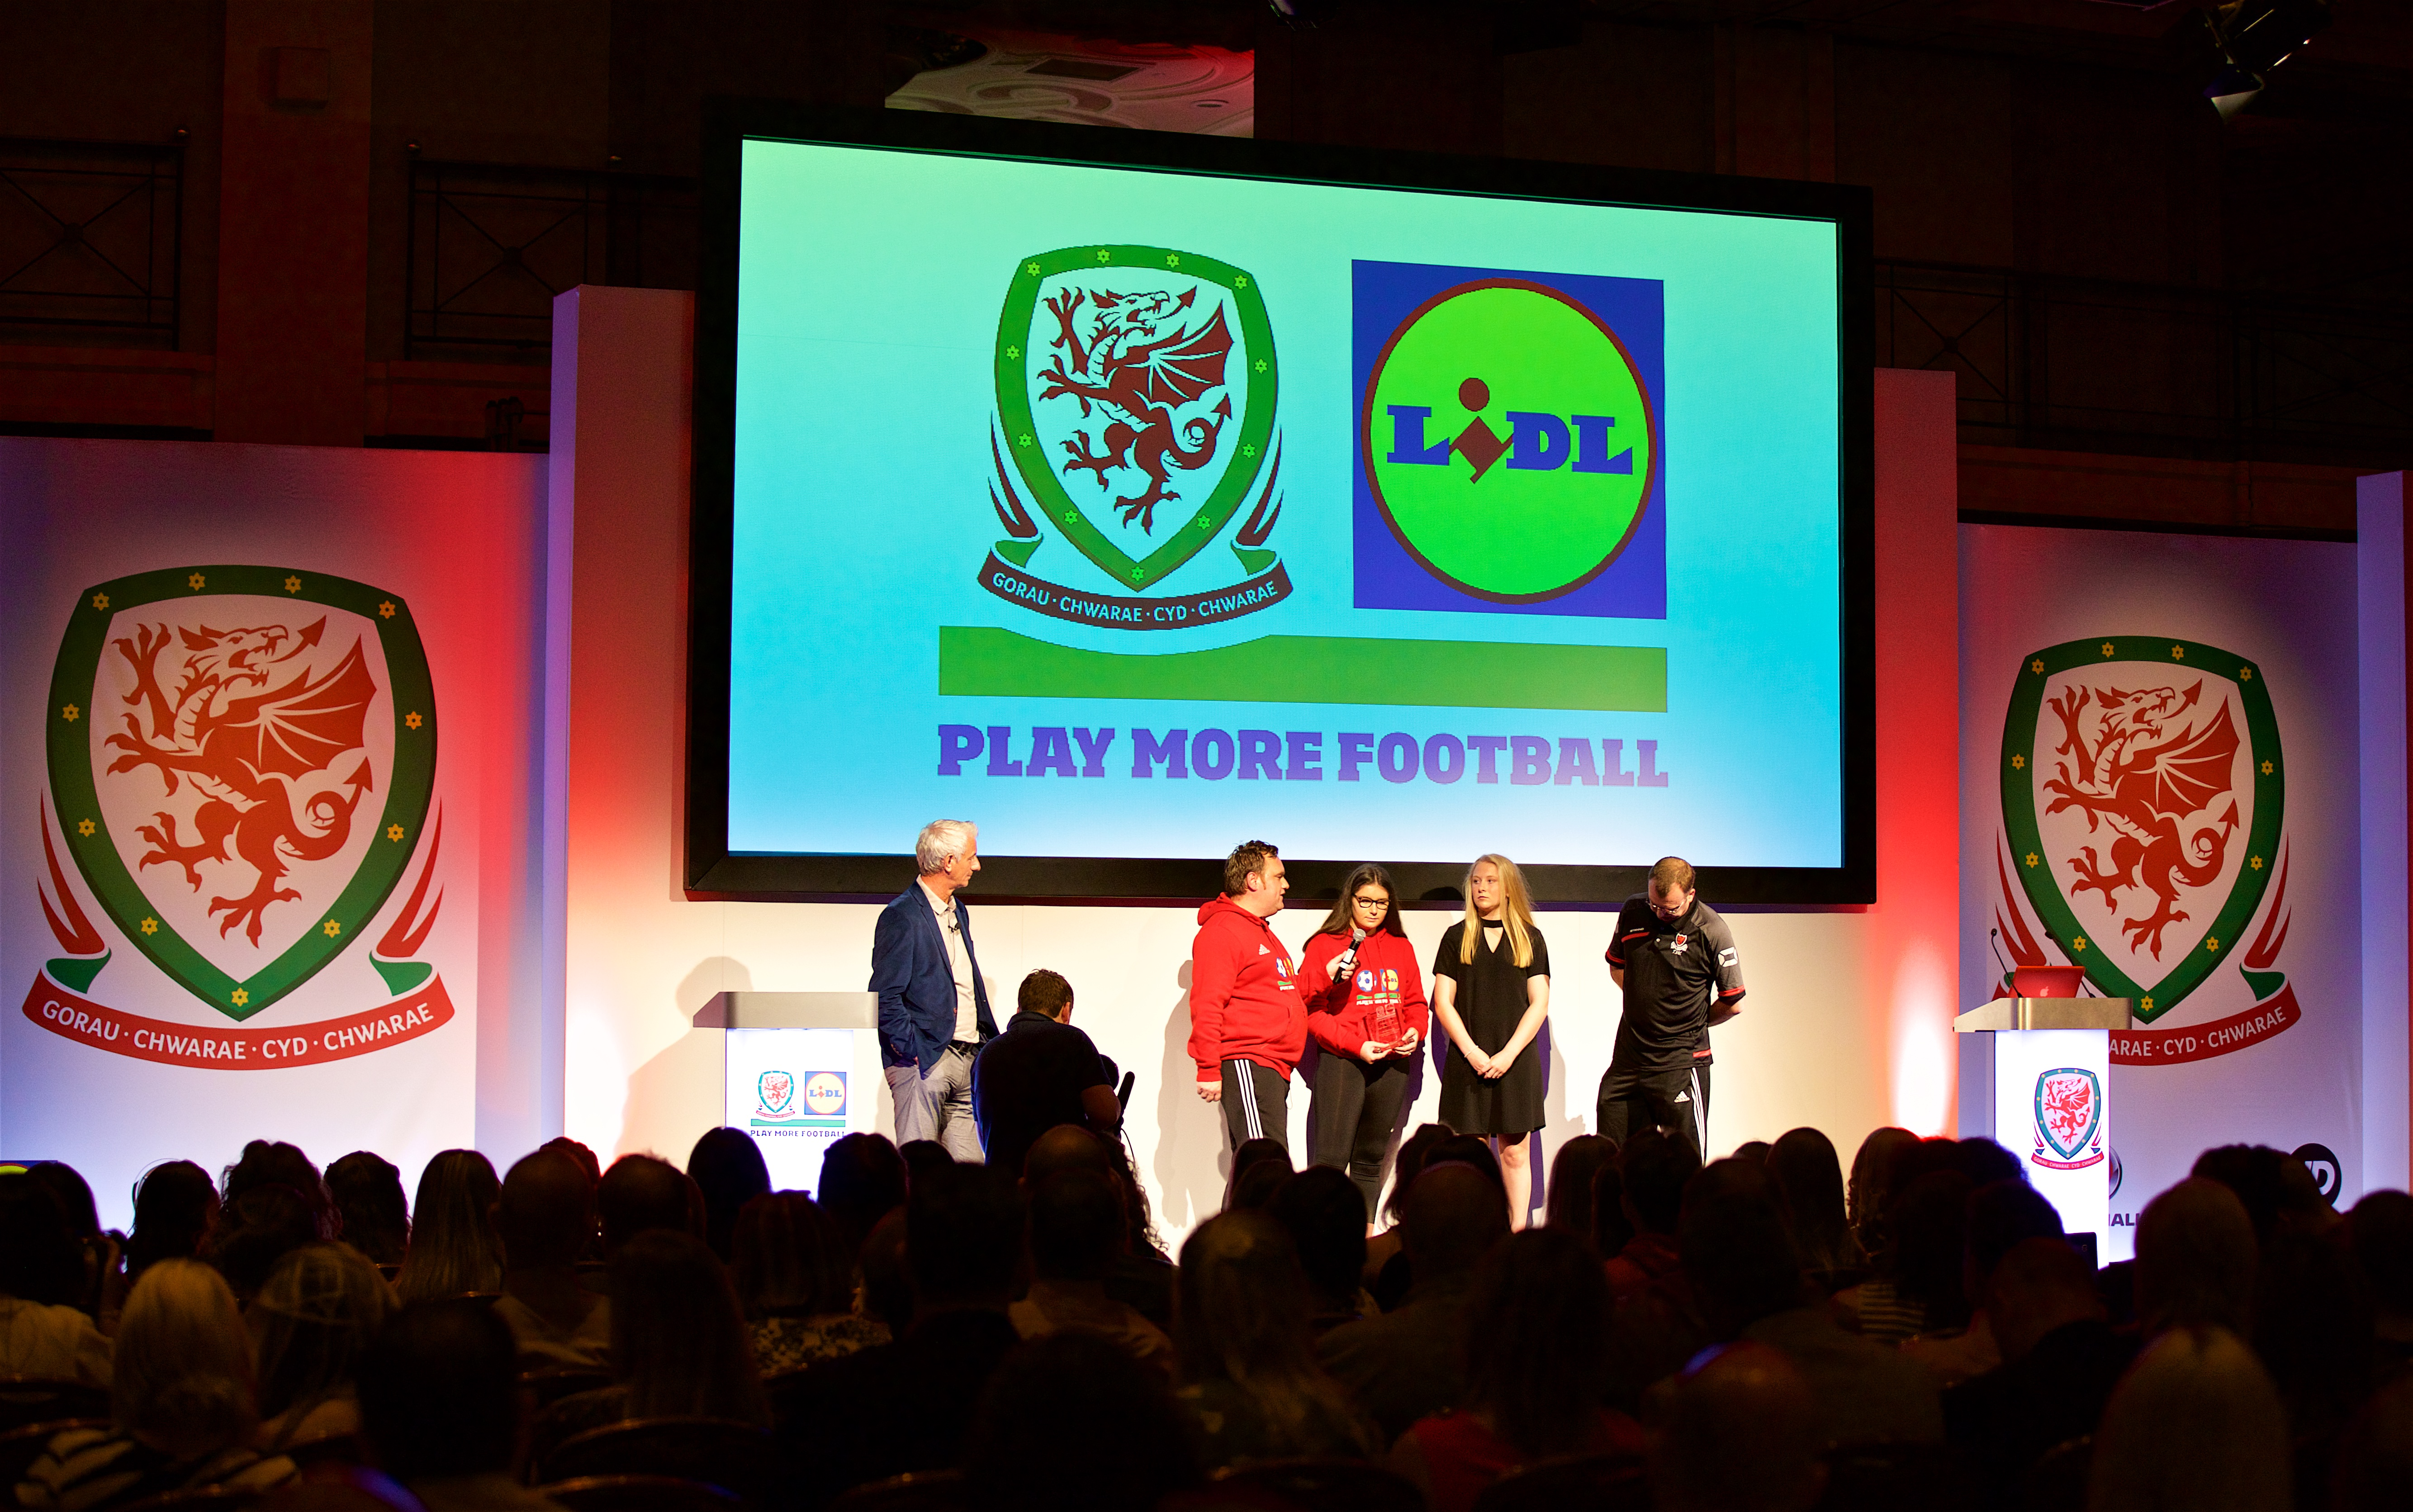 Ian Rush presents Lidl Play More Football awards to deserved winners